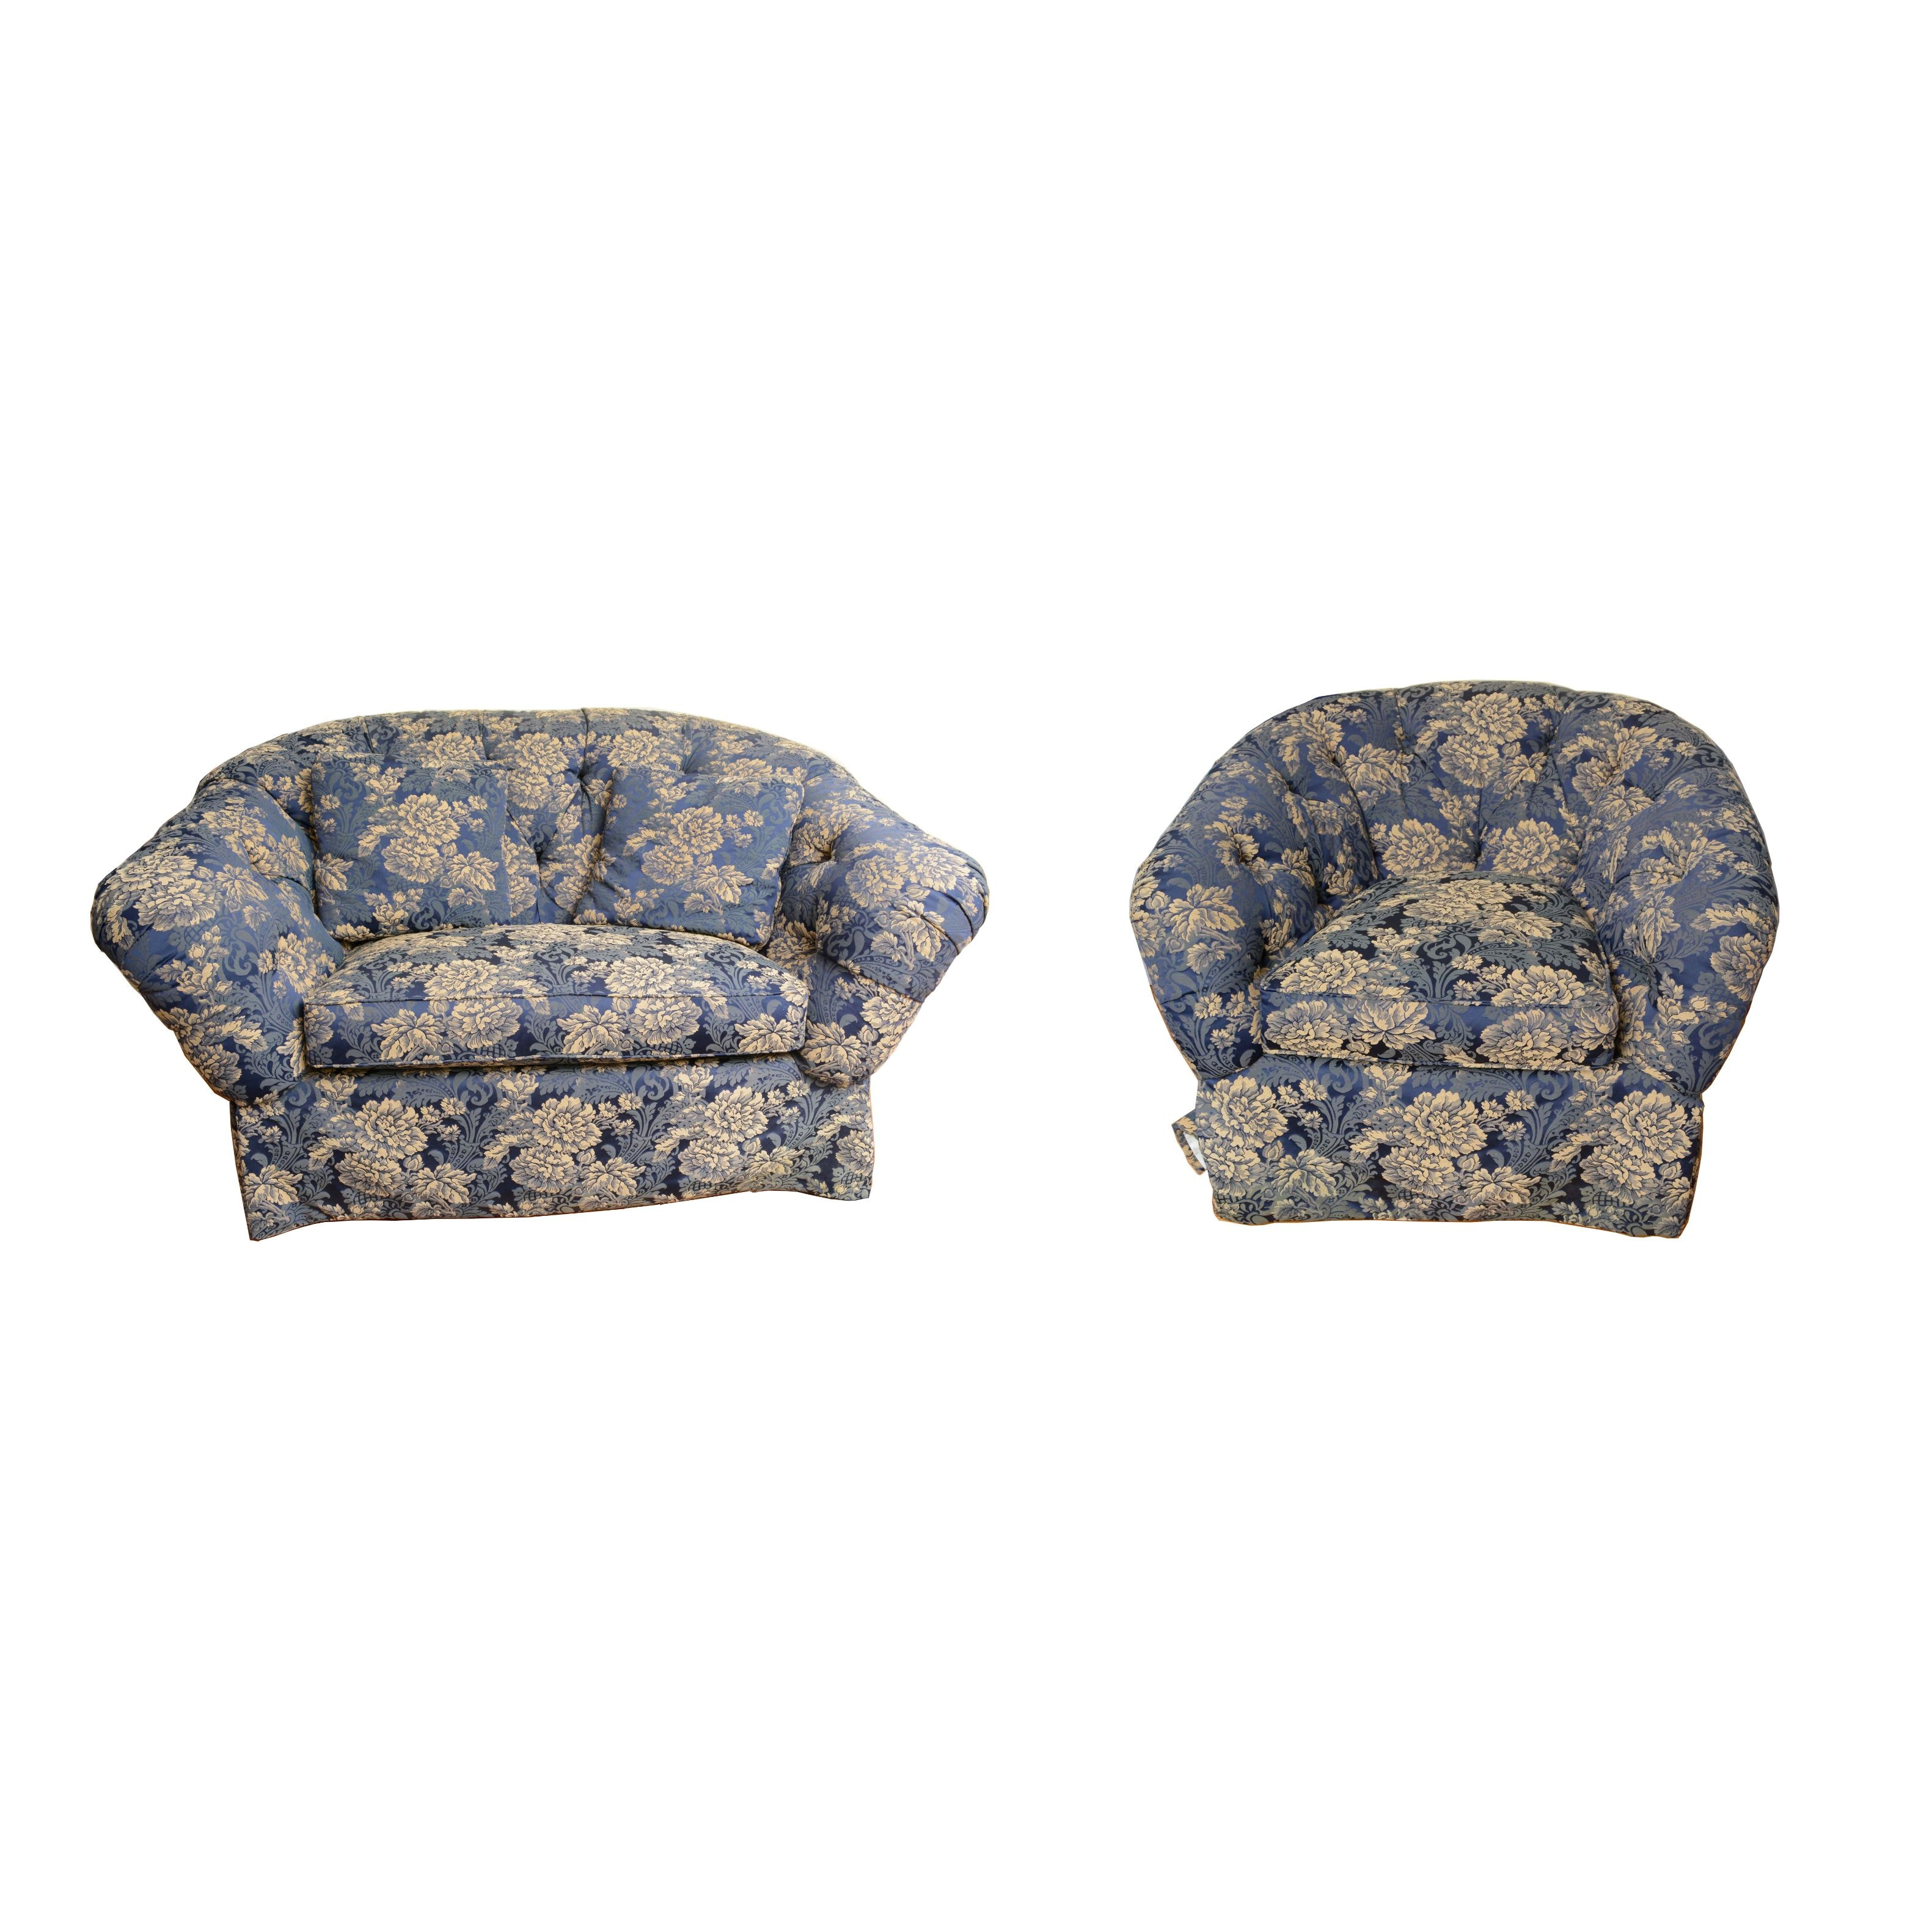 Floral Upholstered Loveseat and Armchair by Frederick Edward